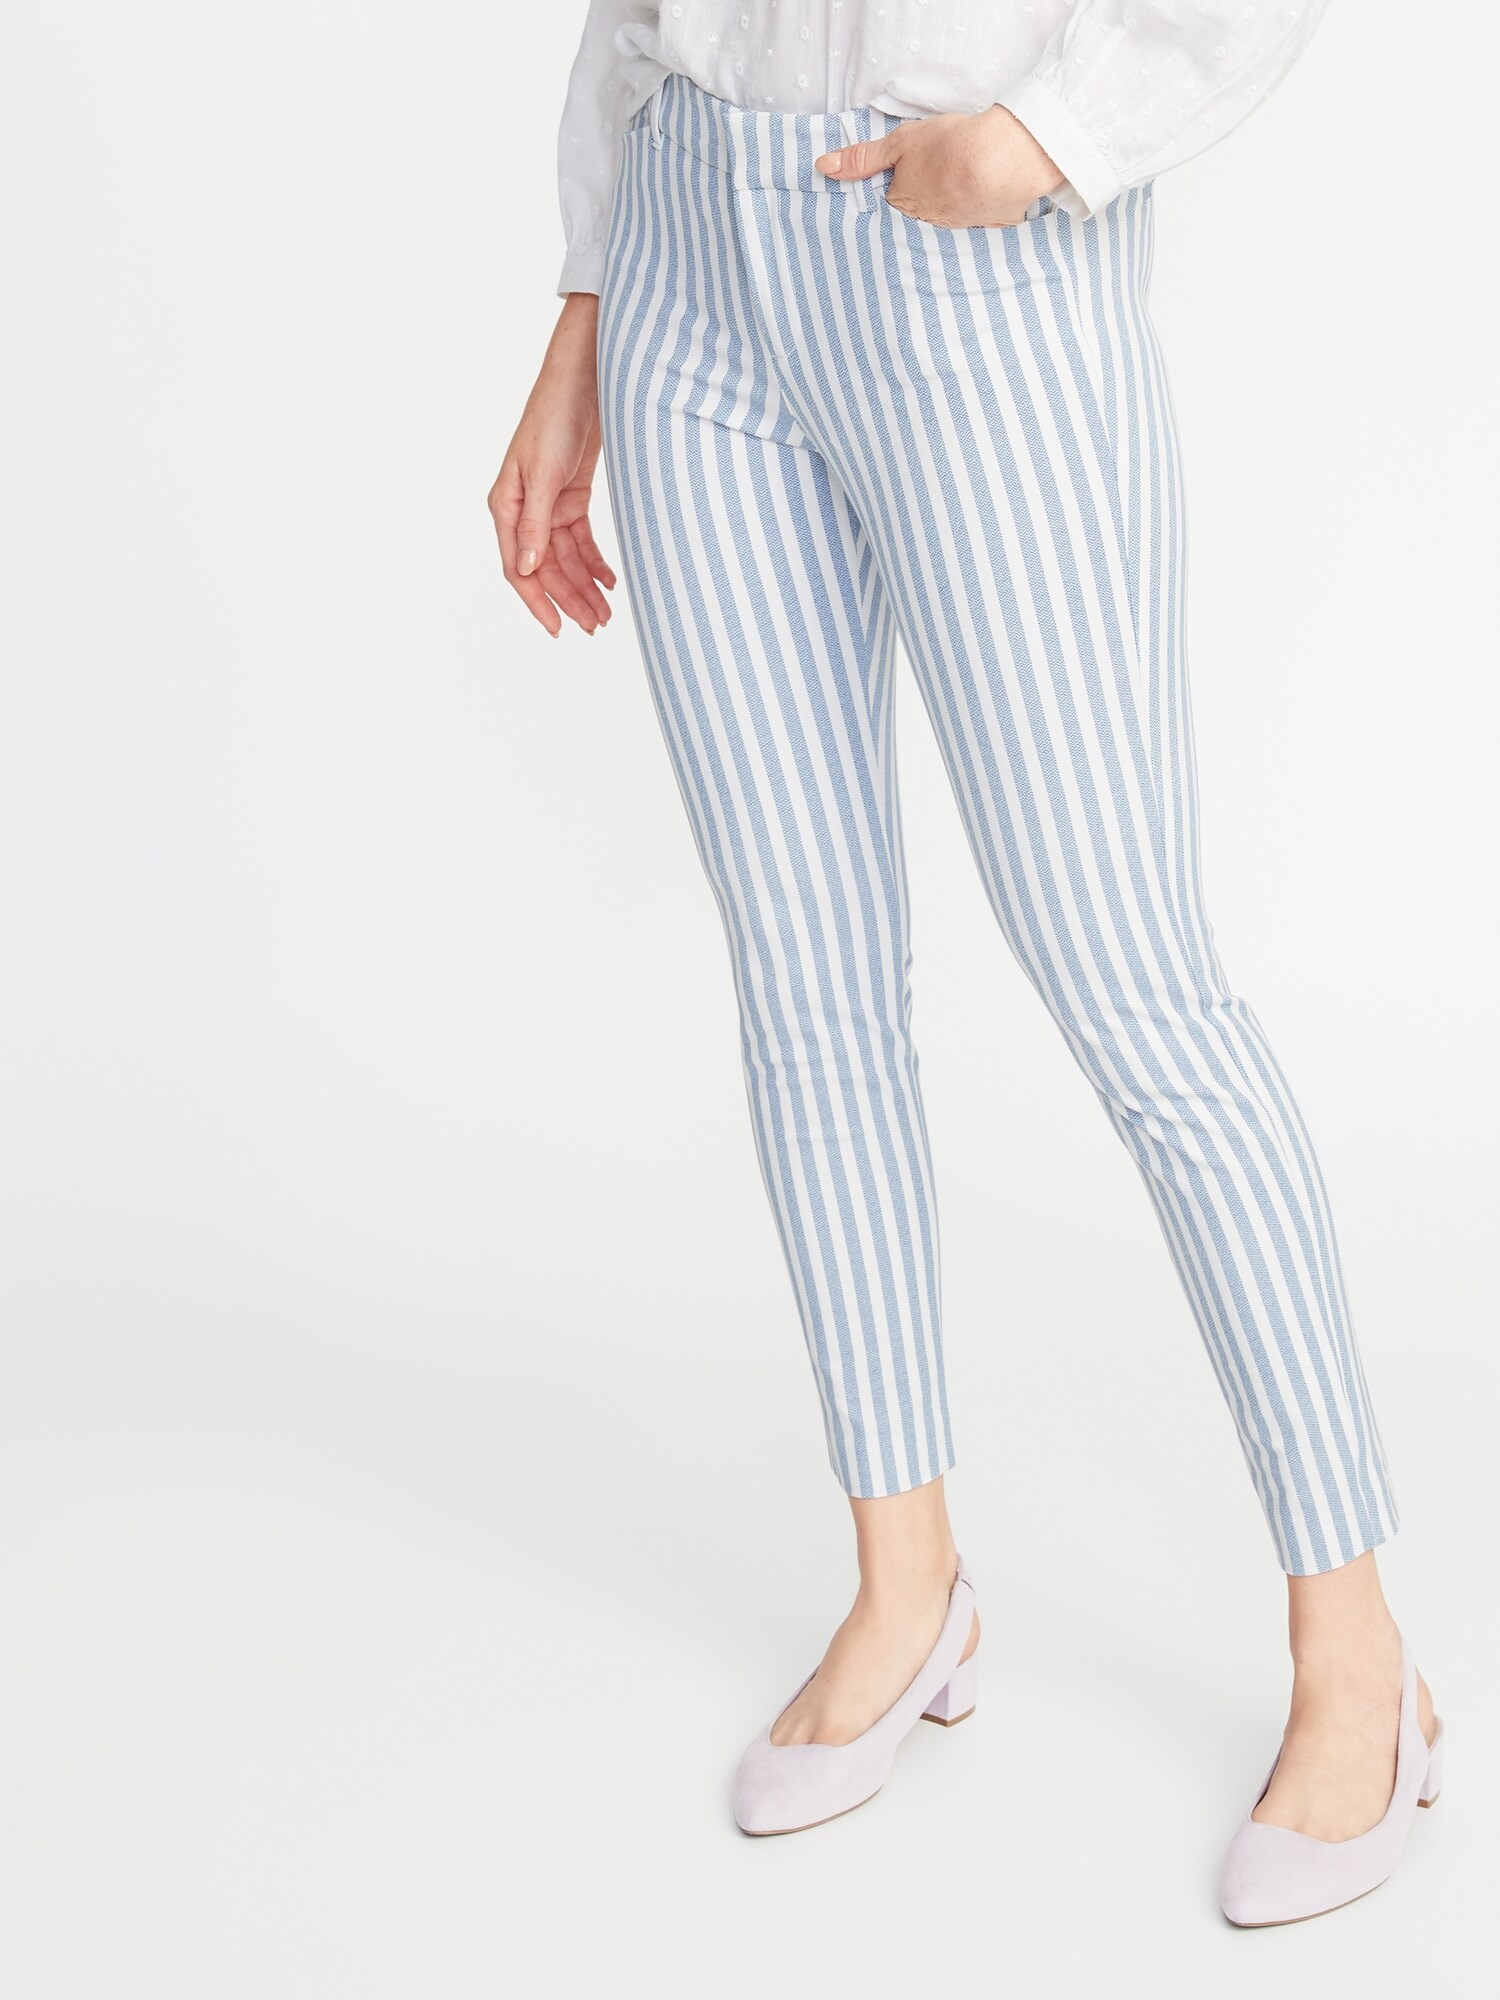 b4564f31d Mid-Rise Printed Pixie Ankle Pants for Women | Old Navy